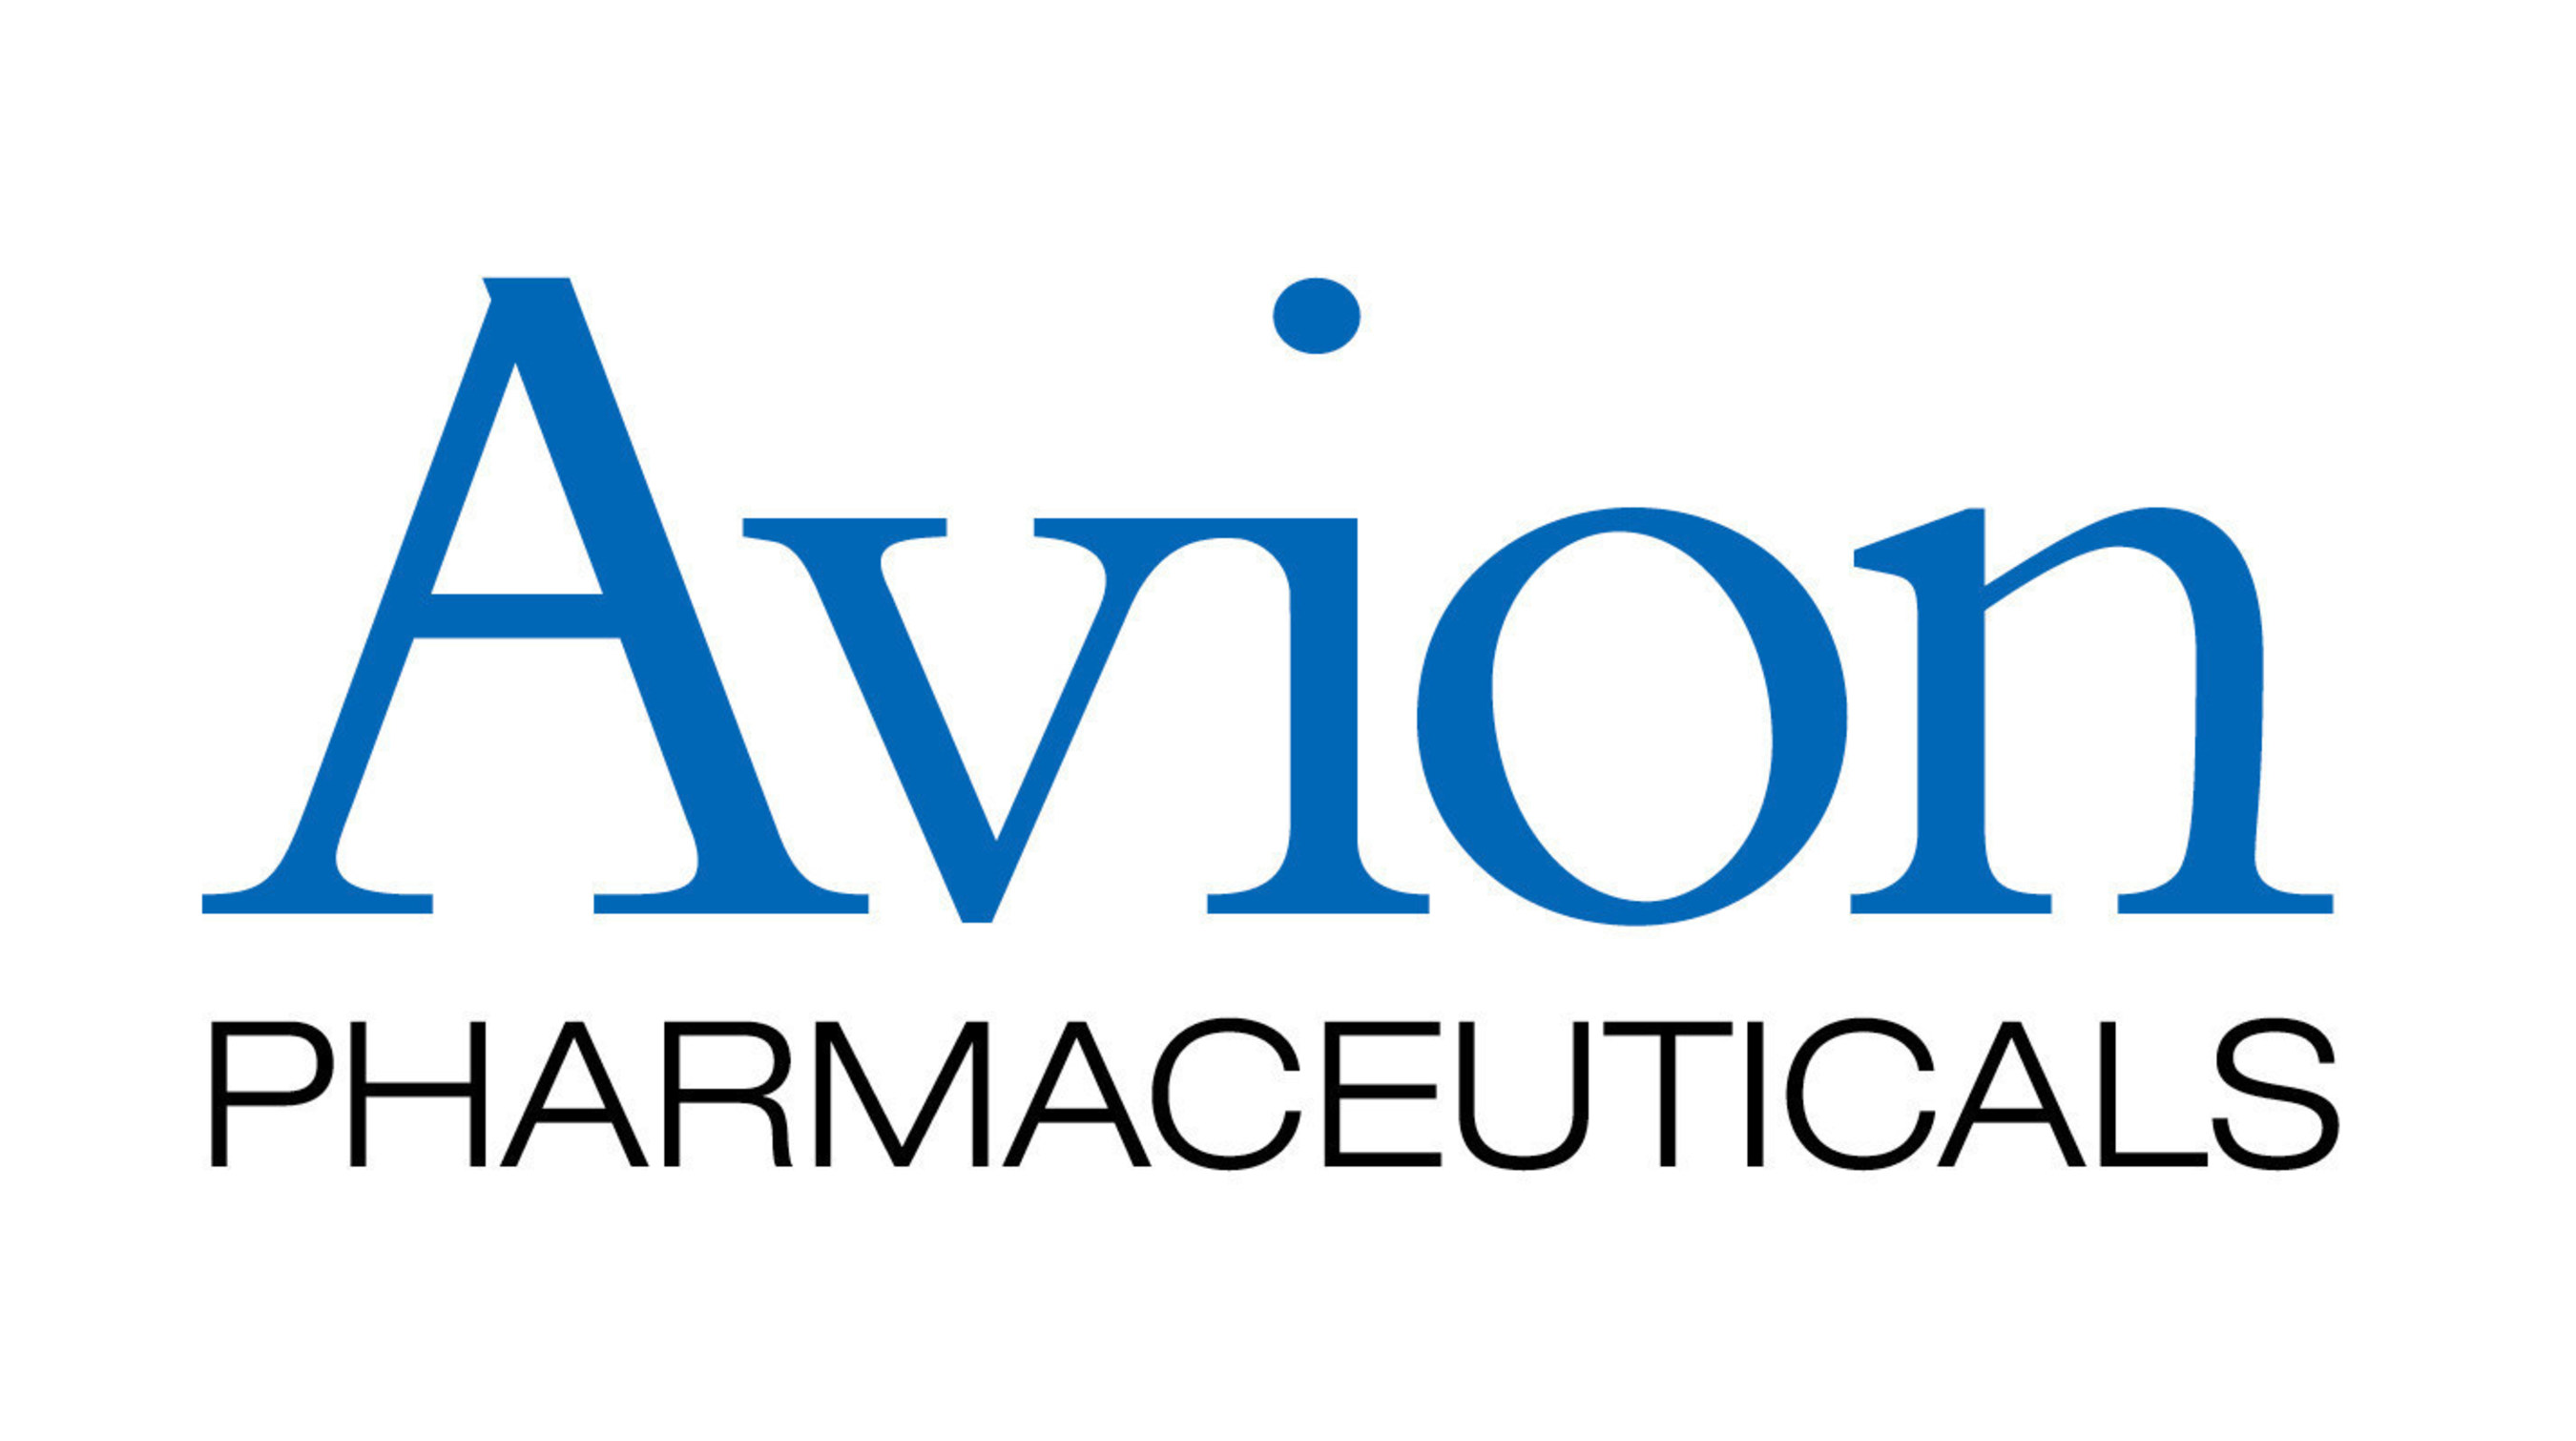 Avion Pharmaceuticals, LLC, relaunches website featuring interactive tool to assist women in making healthful pregnancy choices